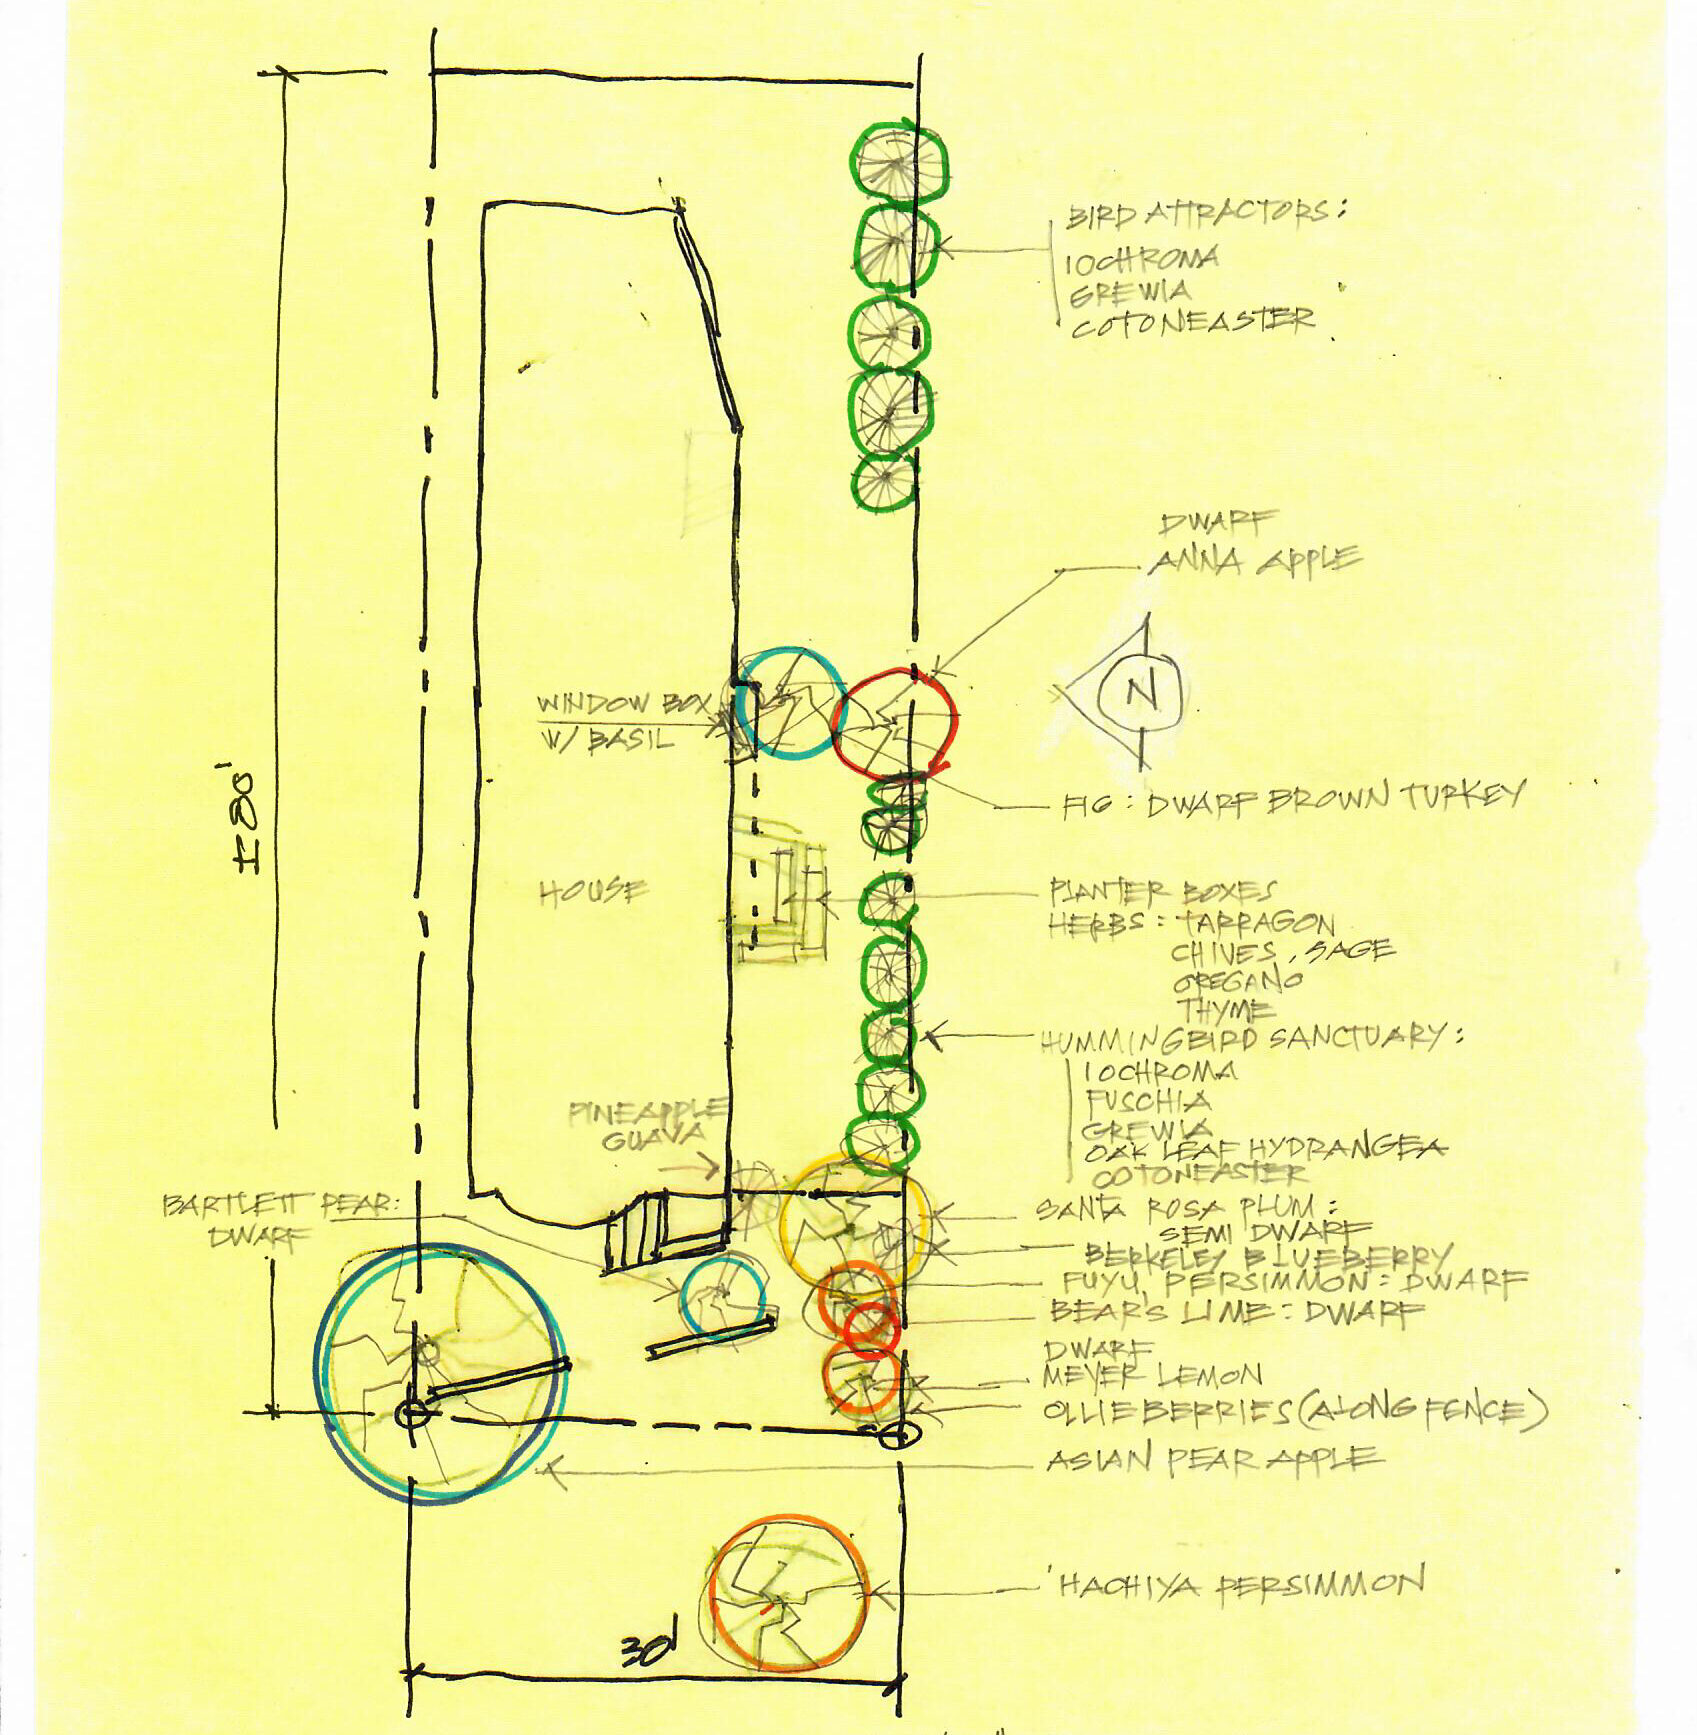 Map of driveway planting palette